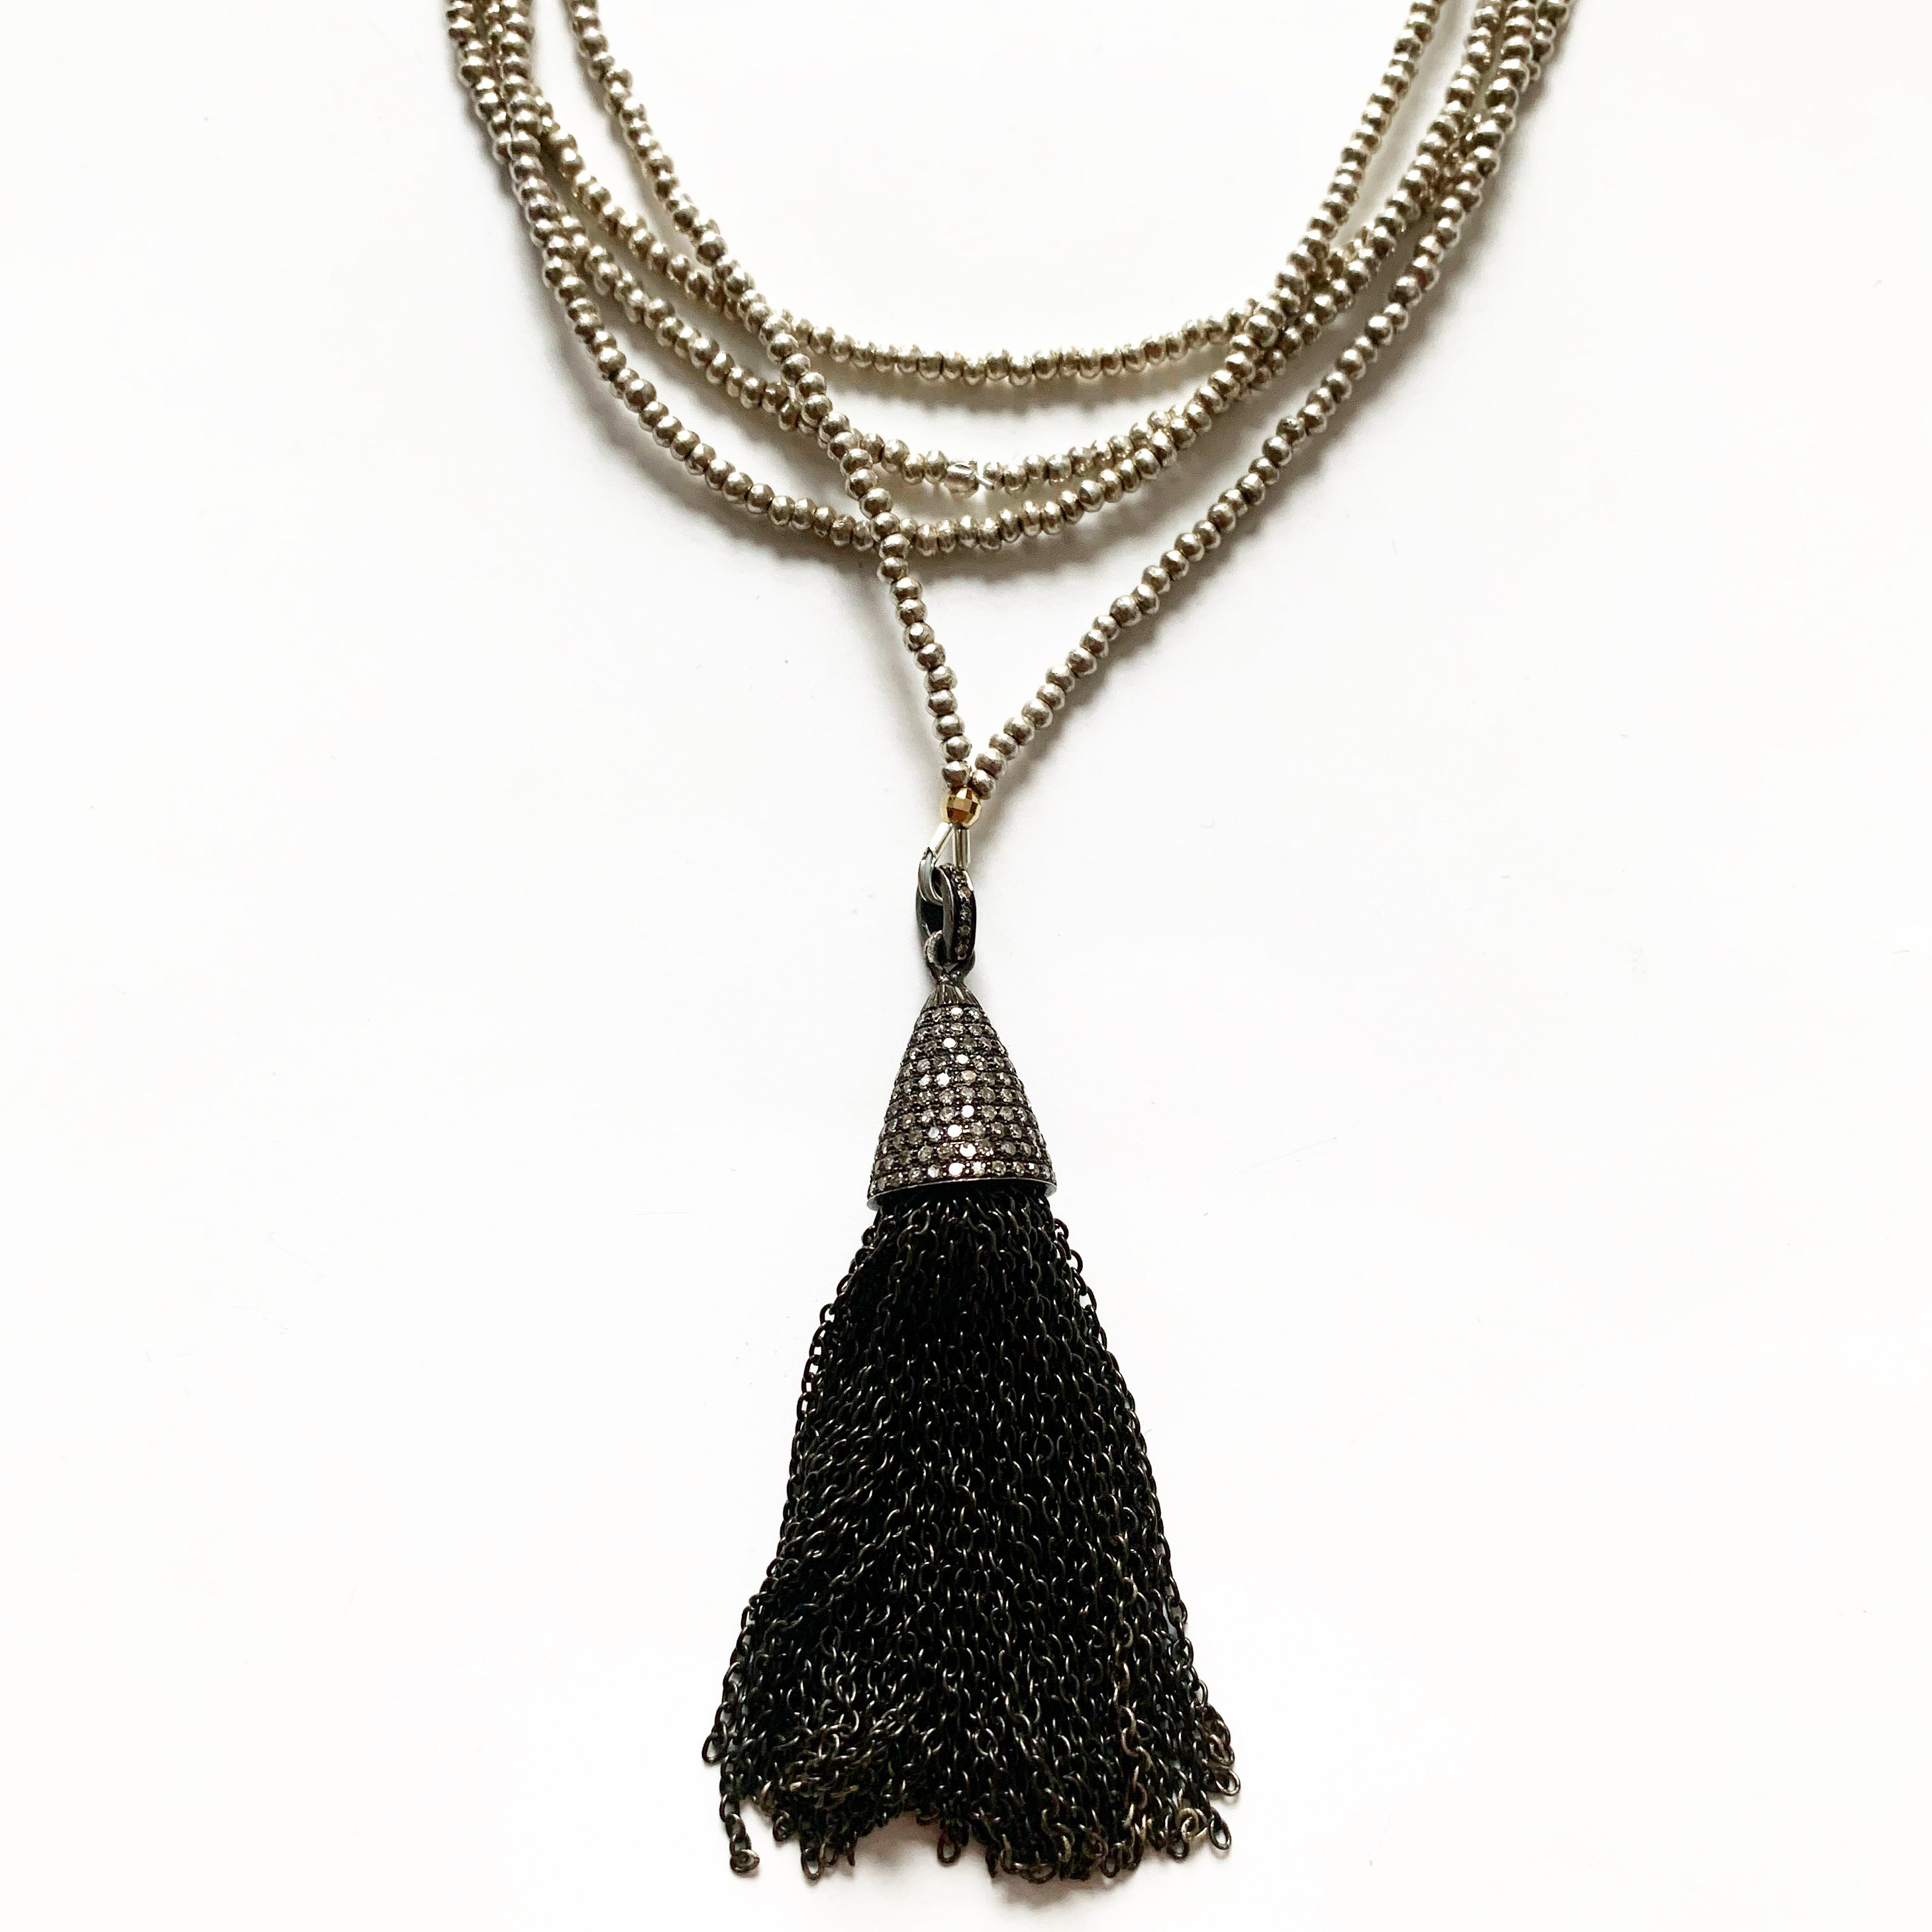 DIAMOND TASSEL HILLTRIBE NECKLACE